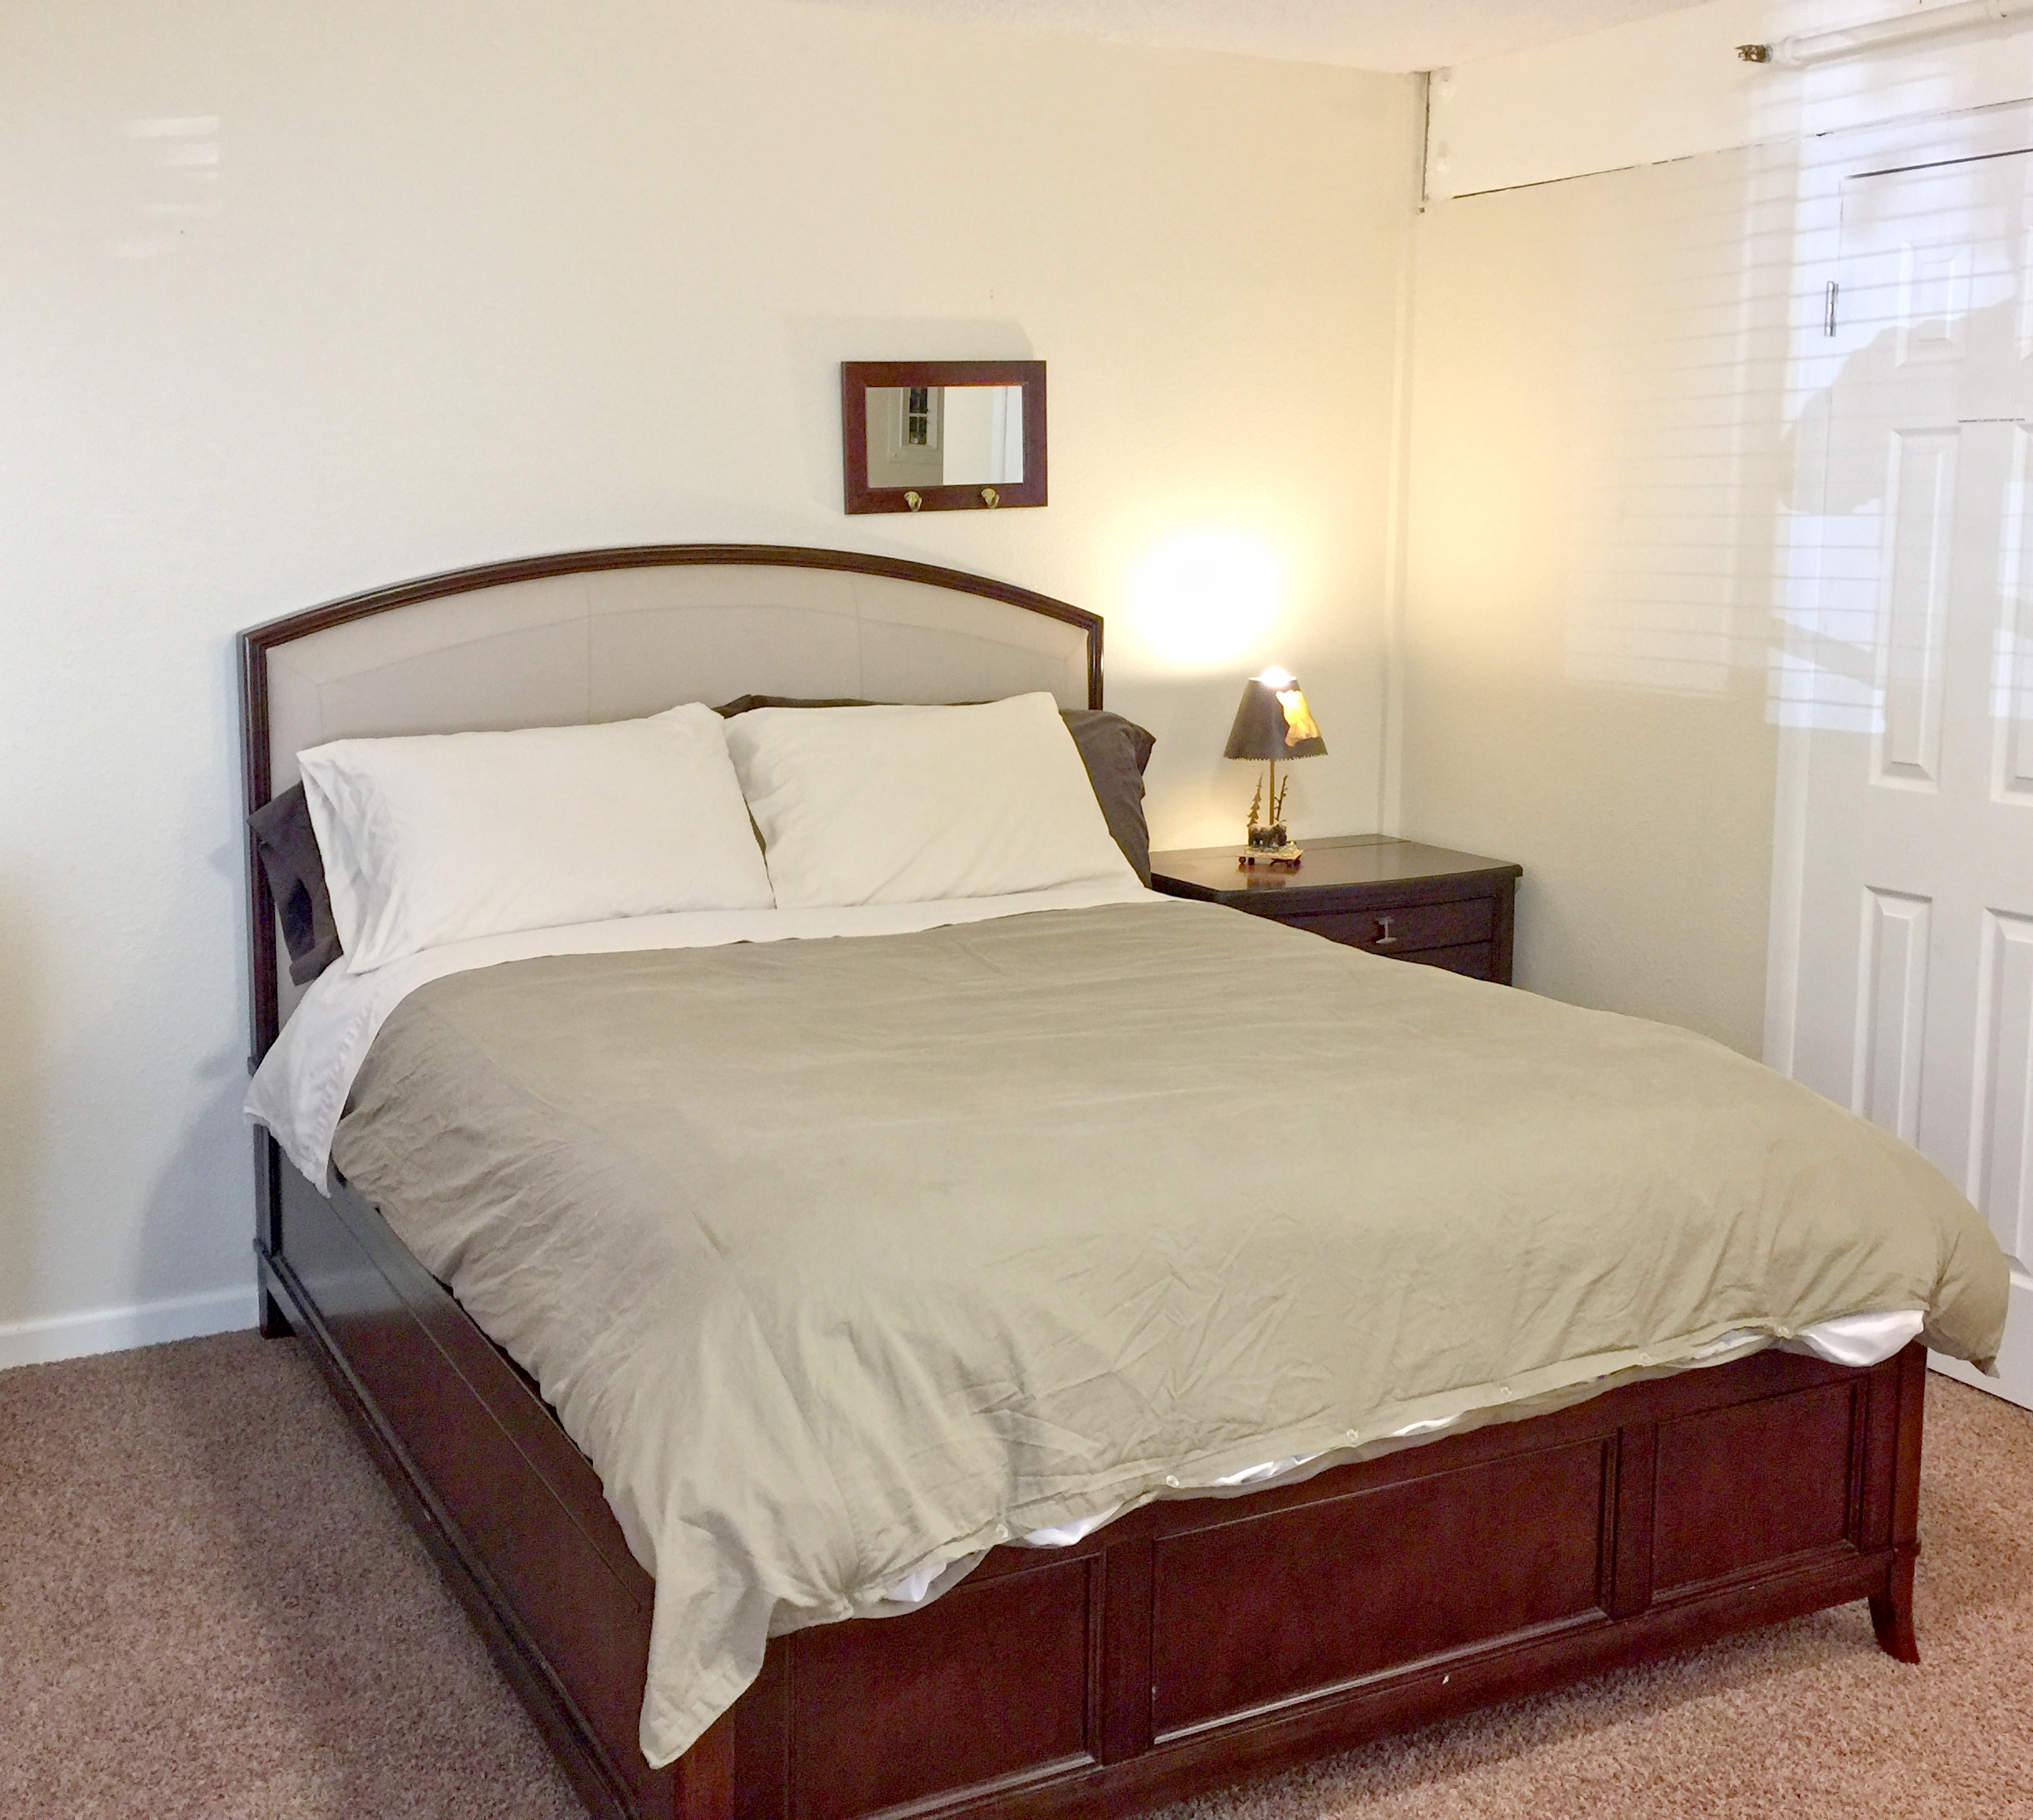 The other side of the bedroom with a queen bed